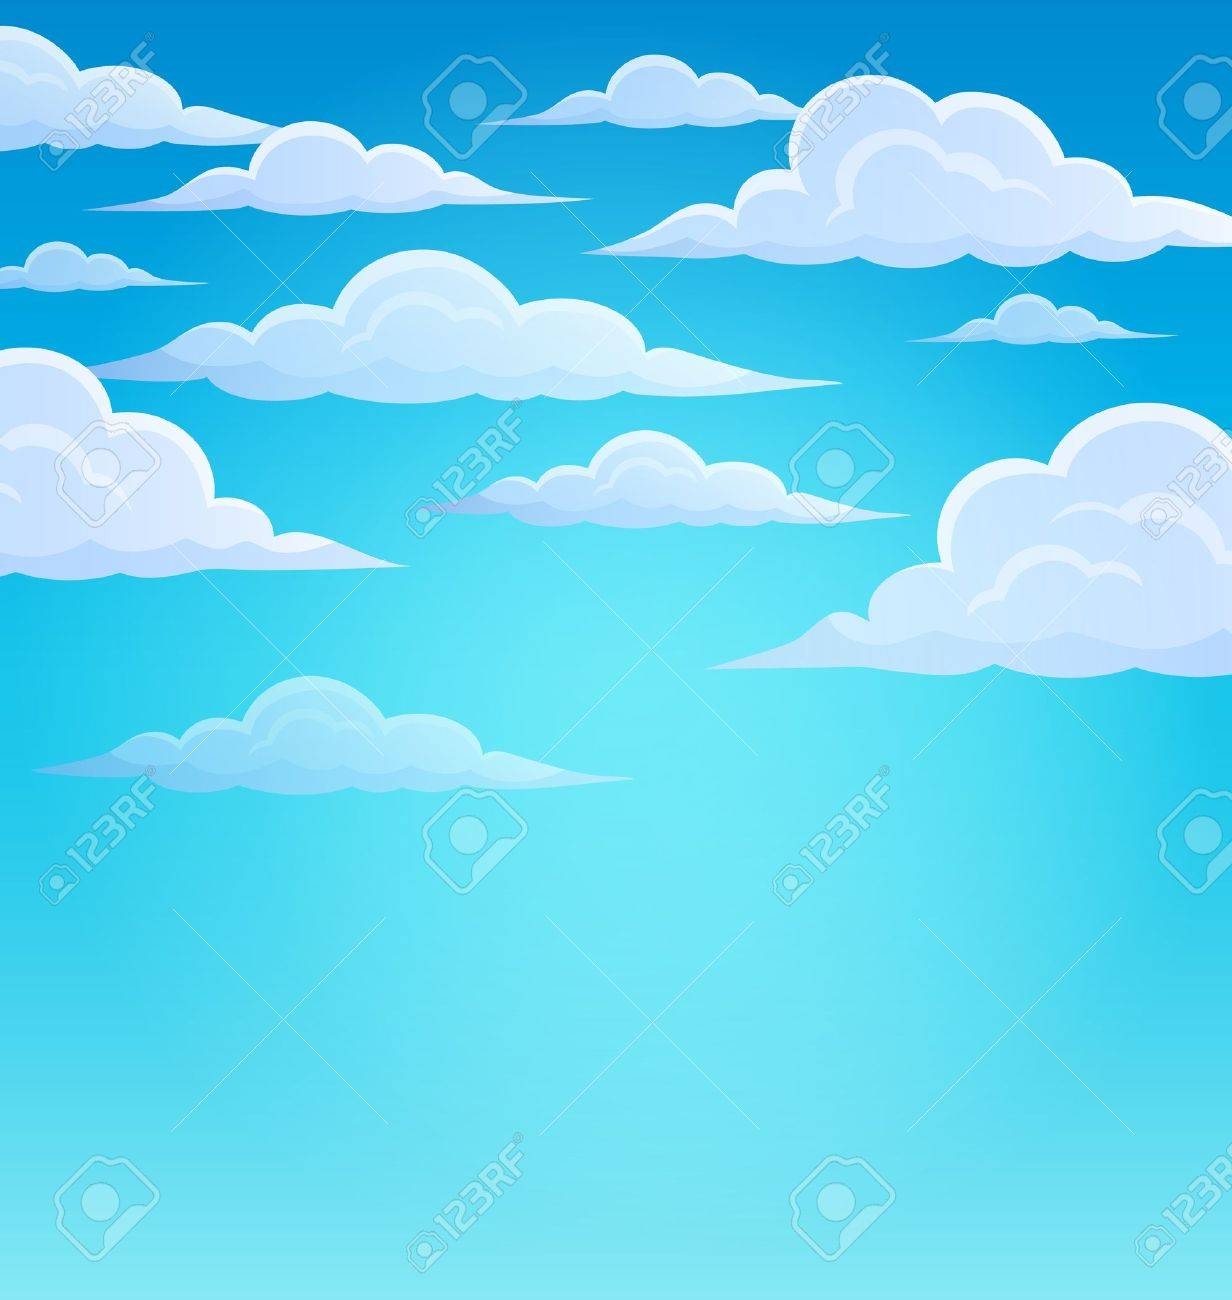 Clouds on sky theme 1 - eps10 vector illustration. Stock Vector - 38945427